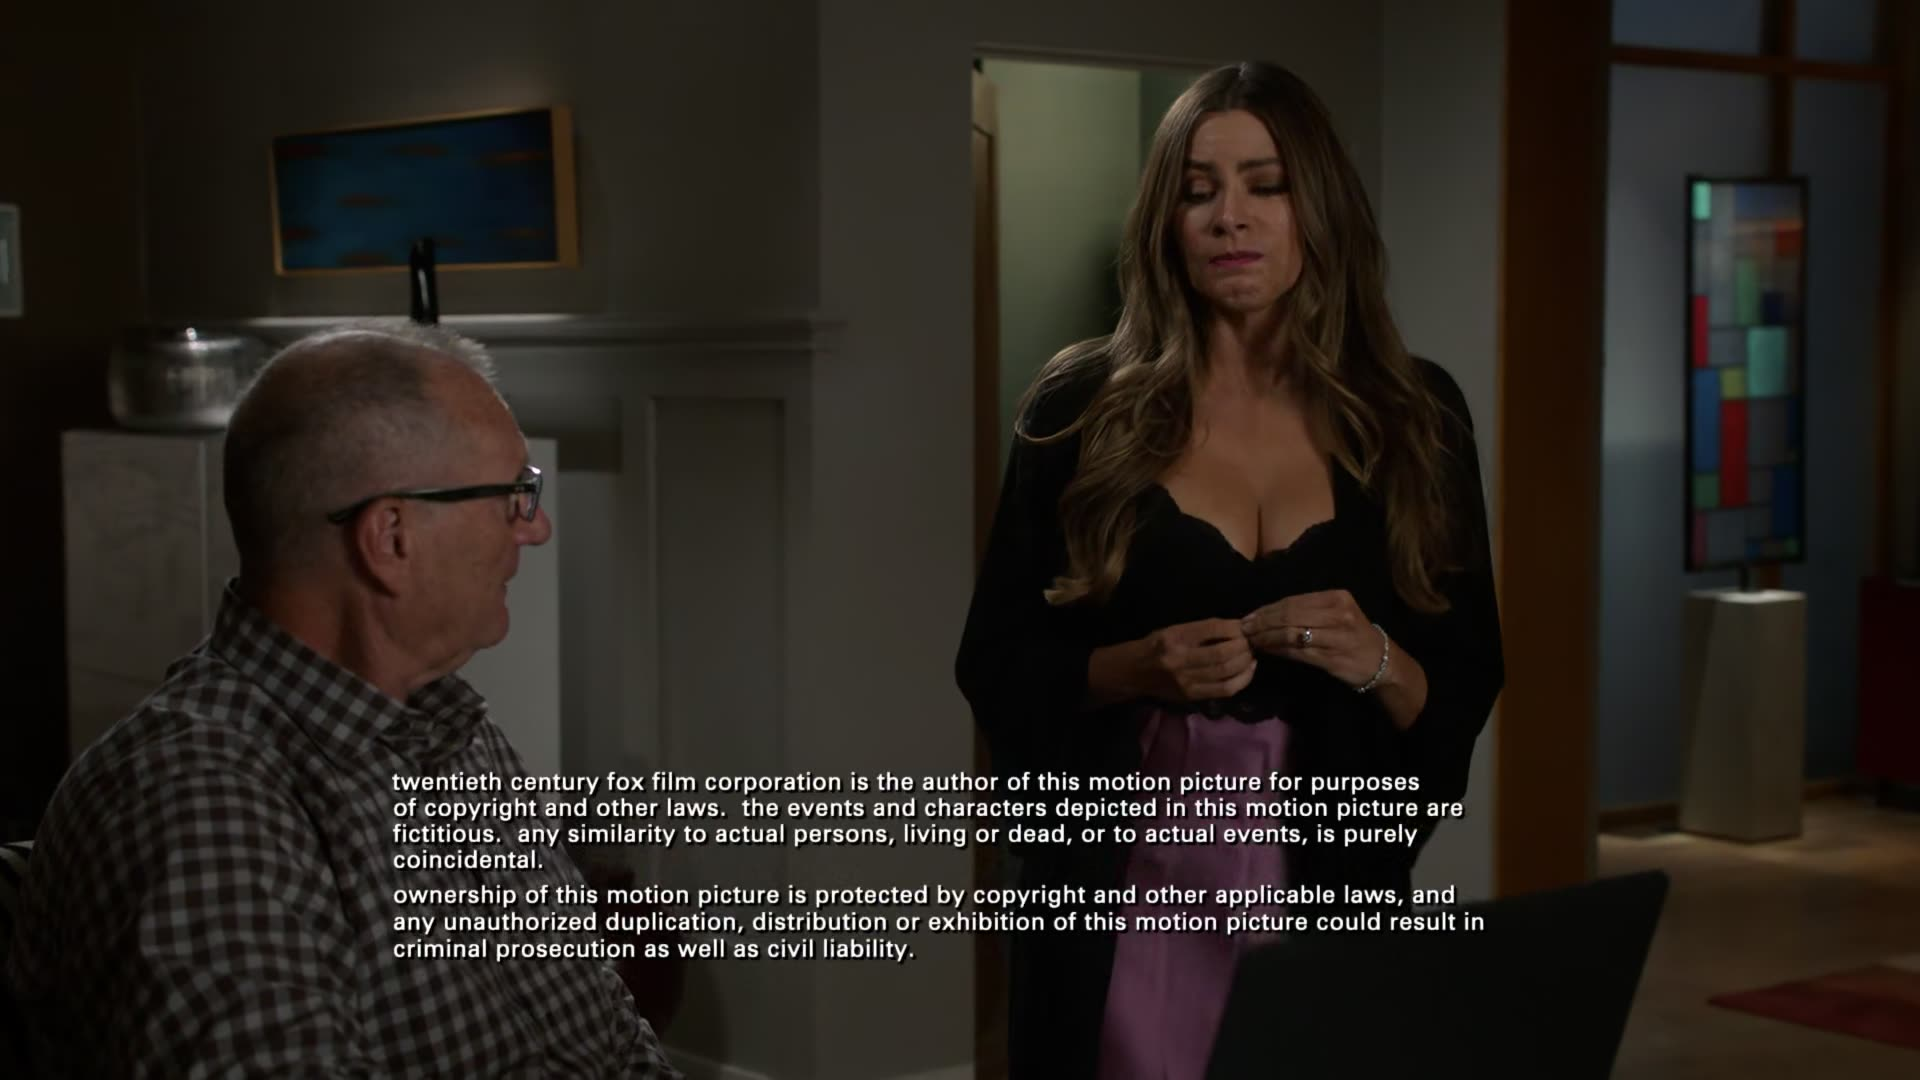 Sofia Vergara cleavage in nightgown scene from Modern Family